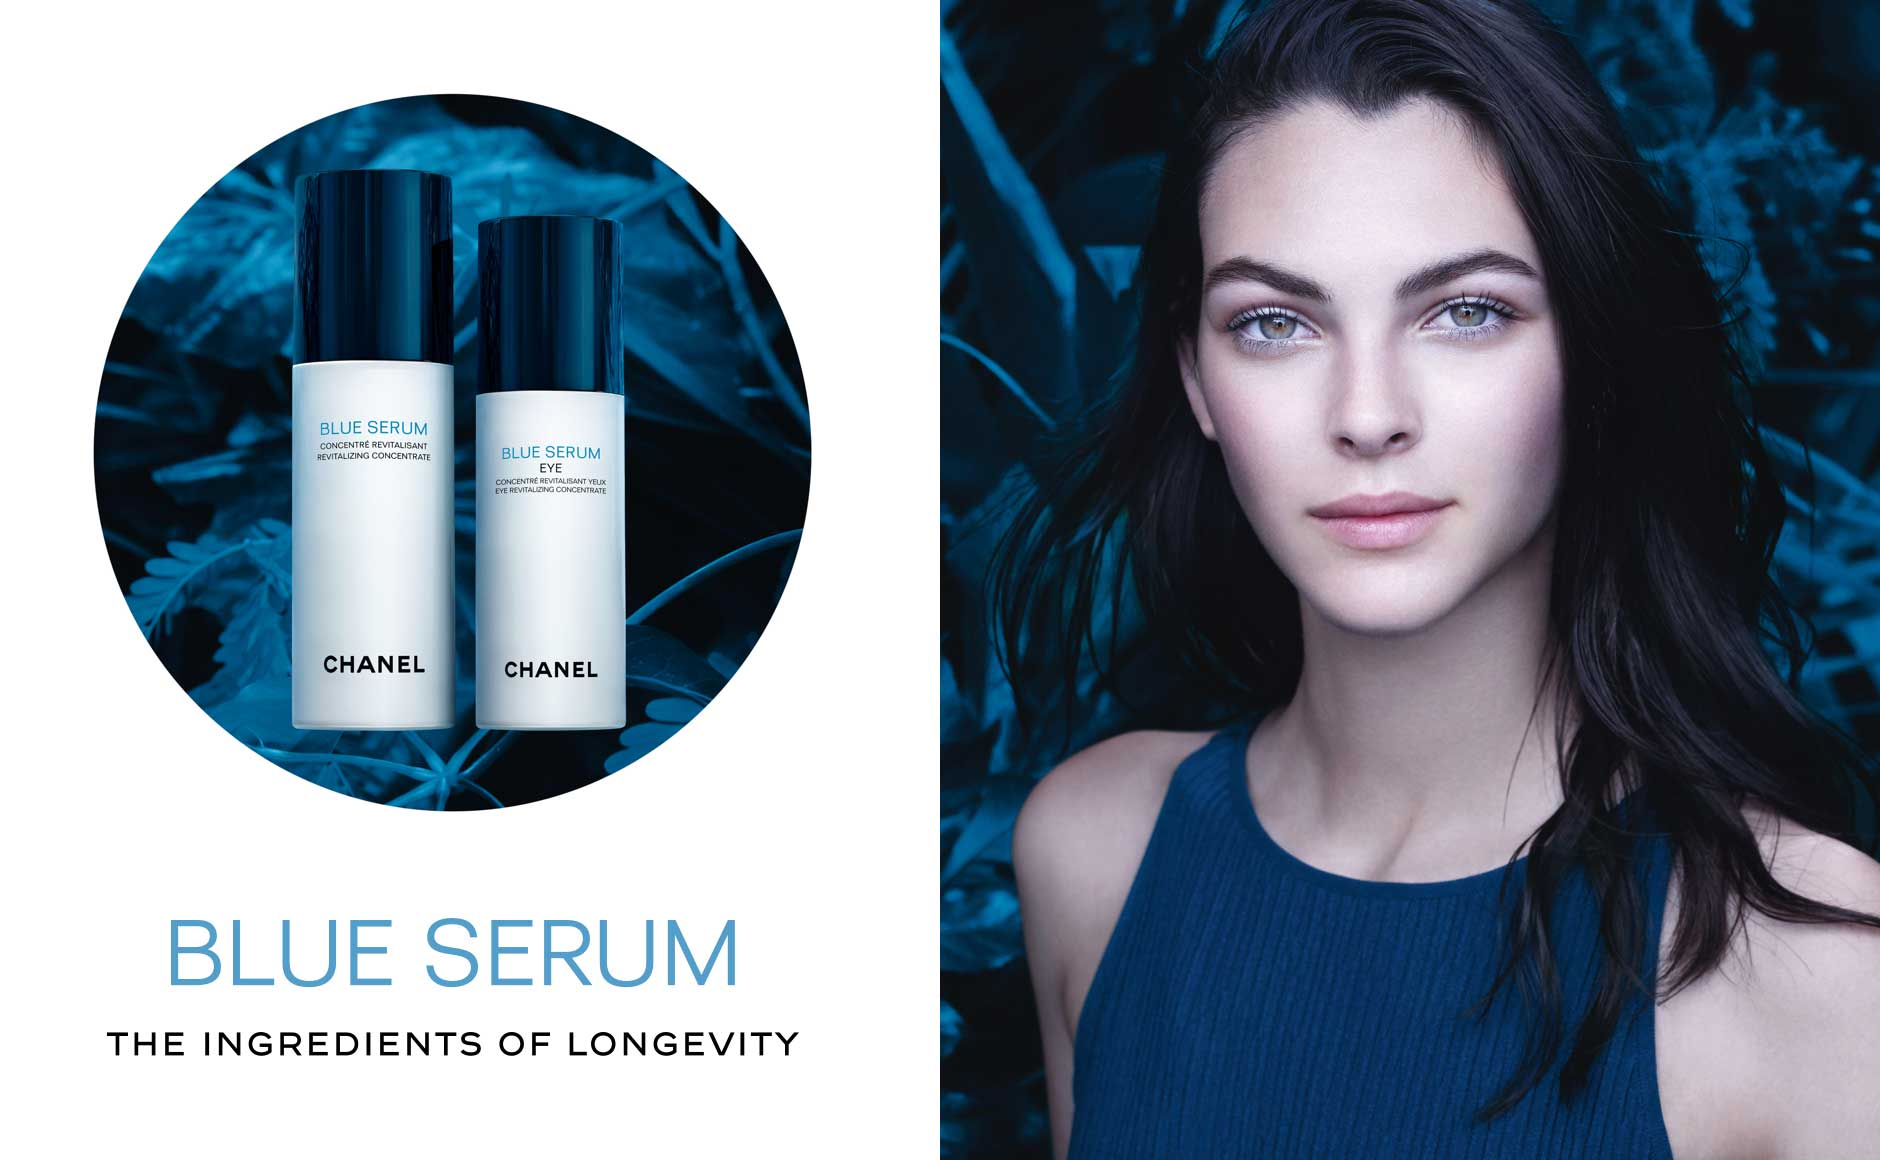 Blue Serum - The Ingredients of Longevity